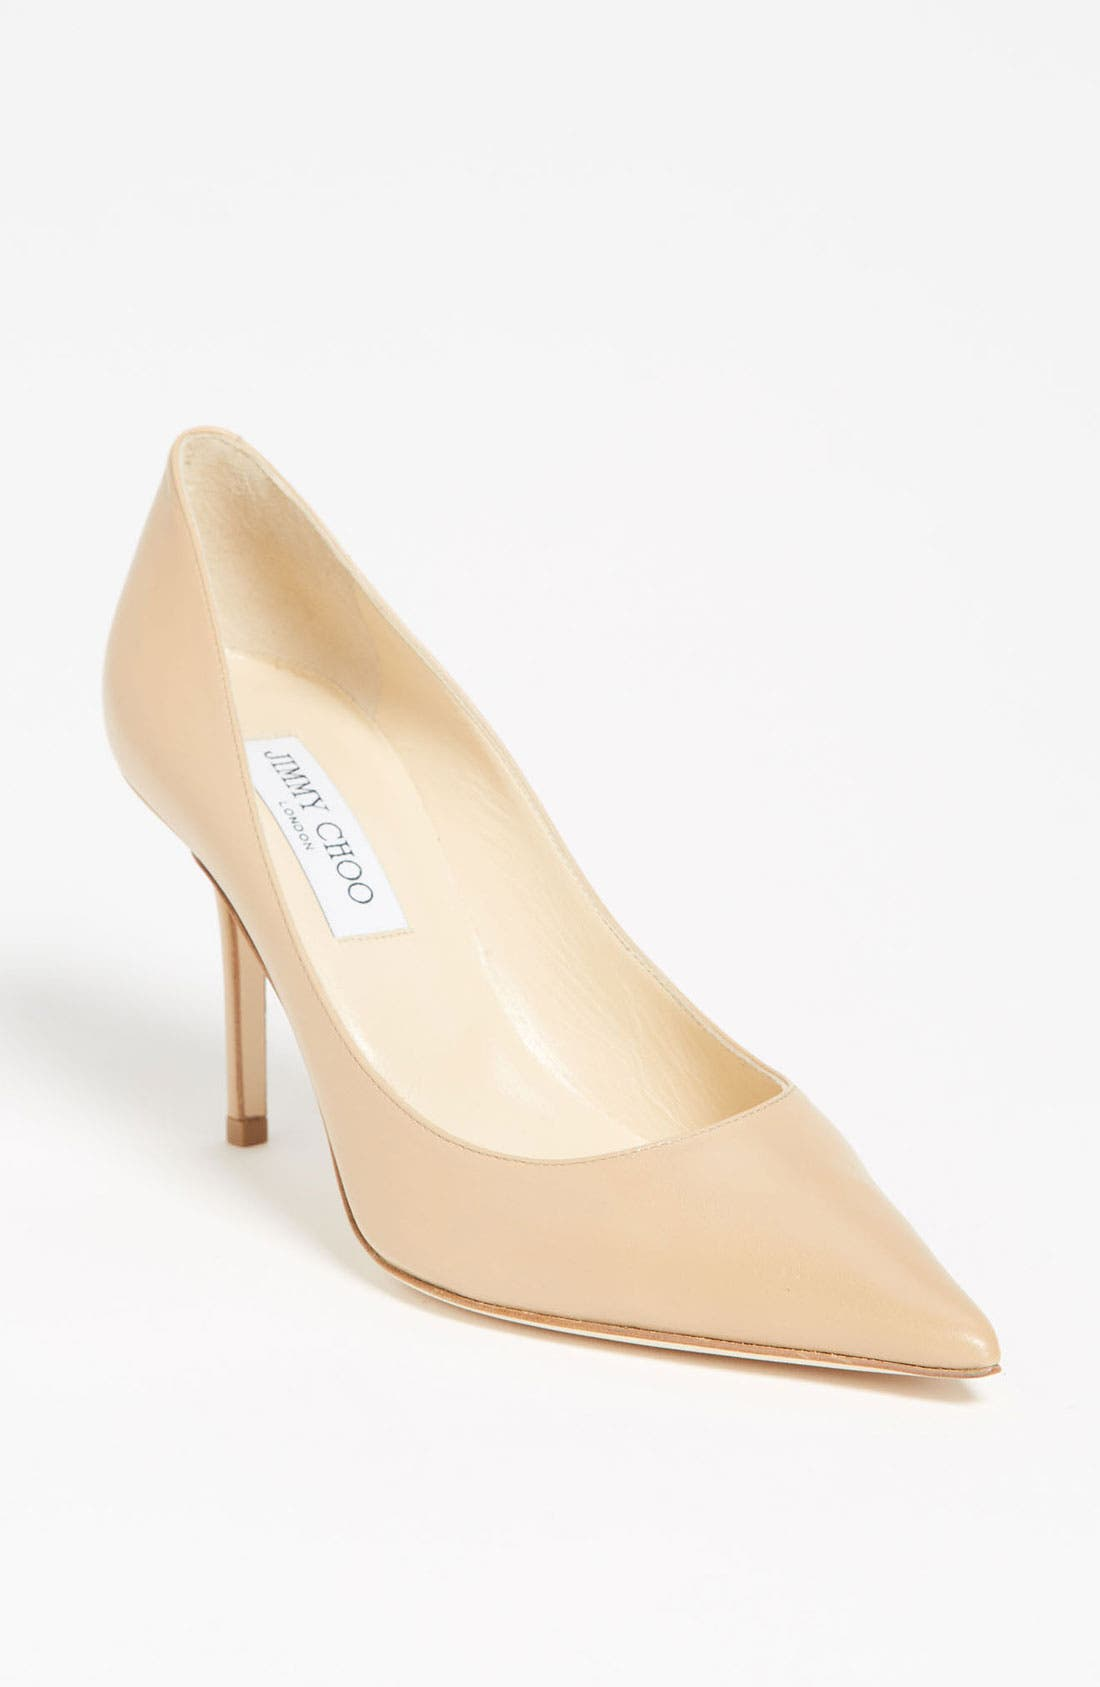 Main Image - Jimmy Choo 'Agnes' Pump